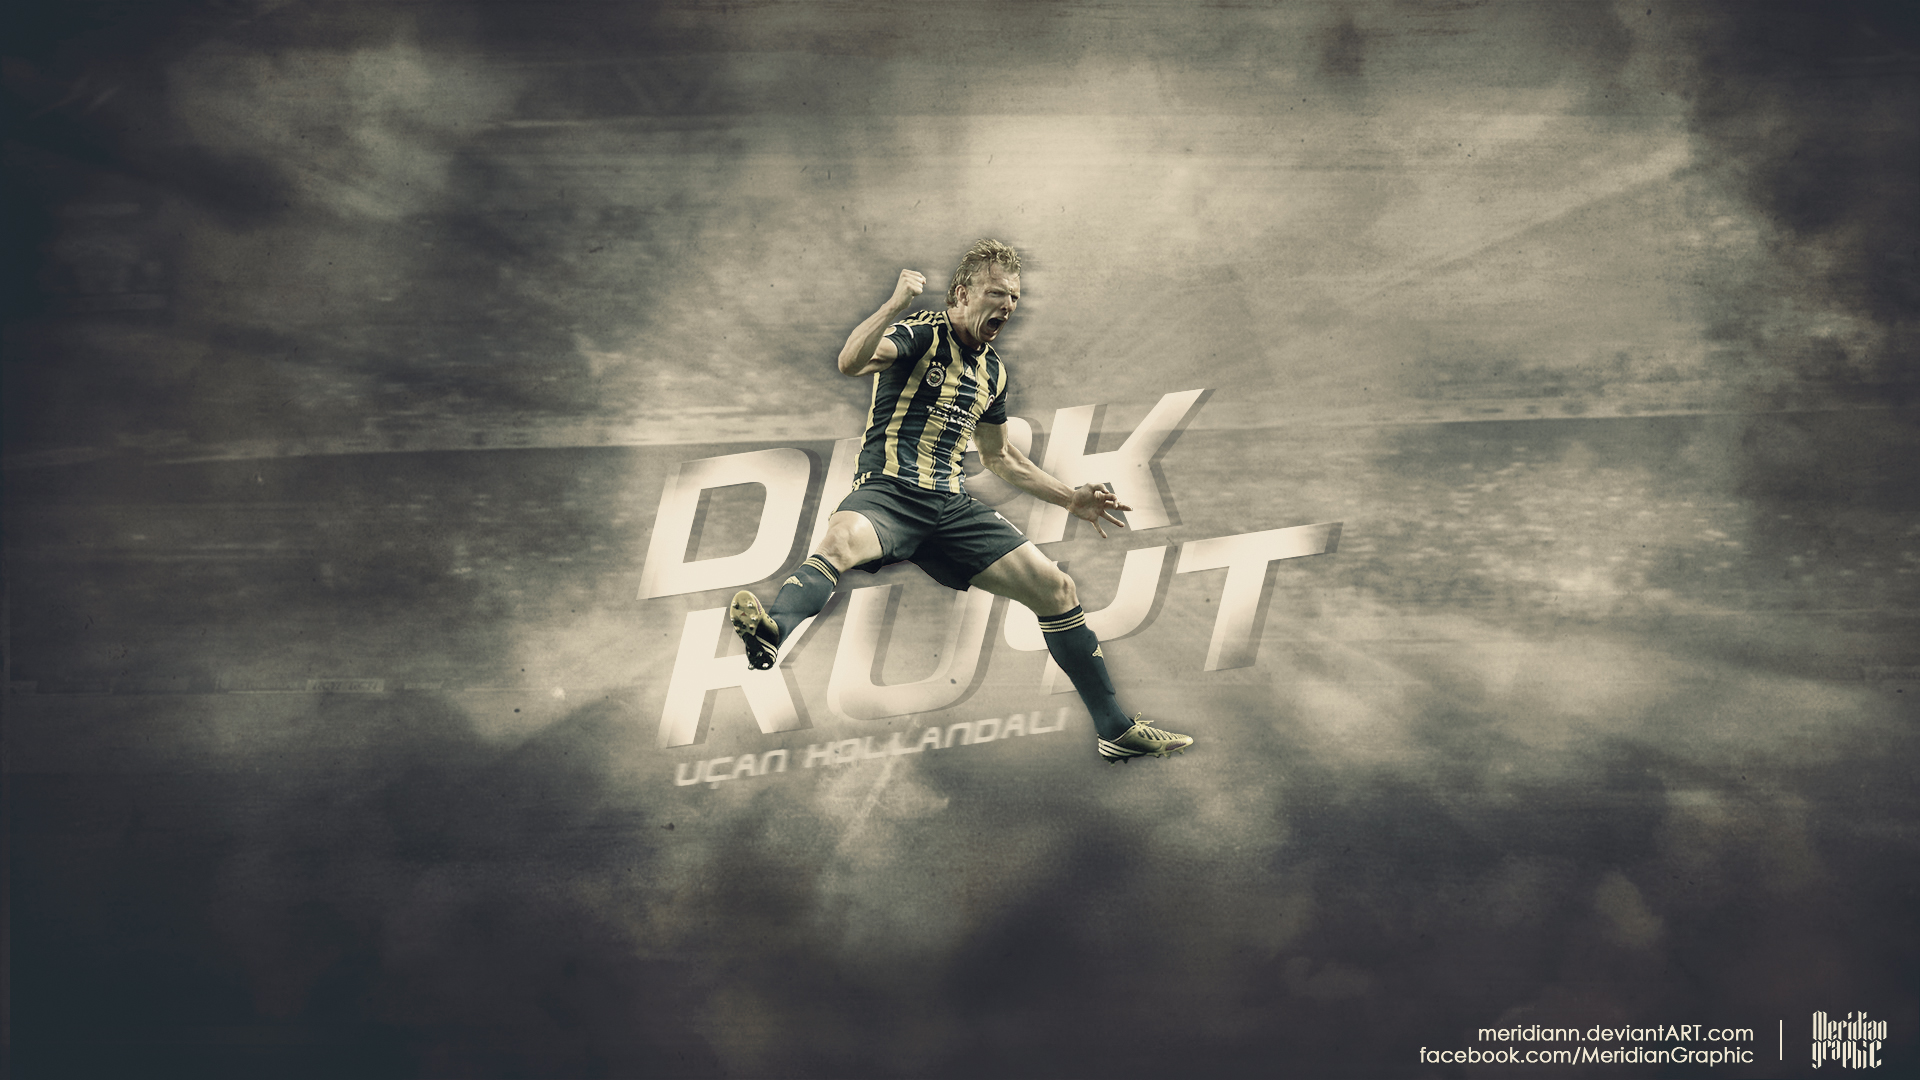 Dirk KUYT Wallpaper by Meridiann